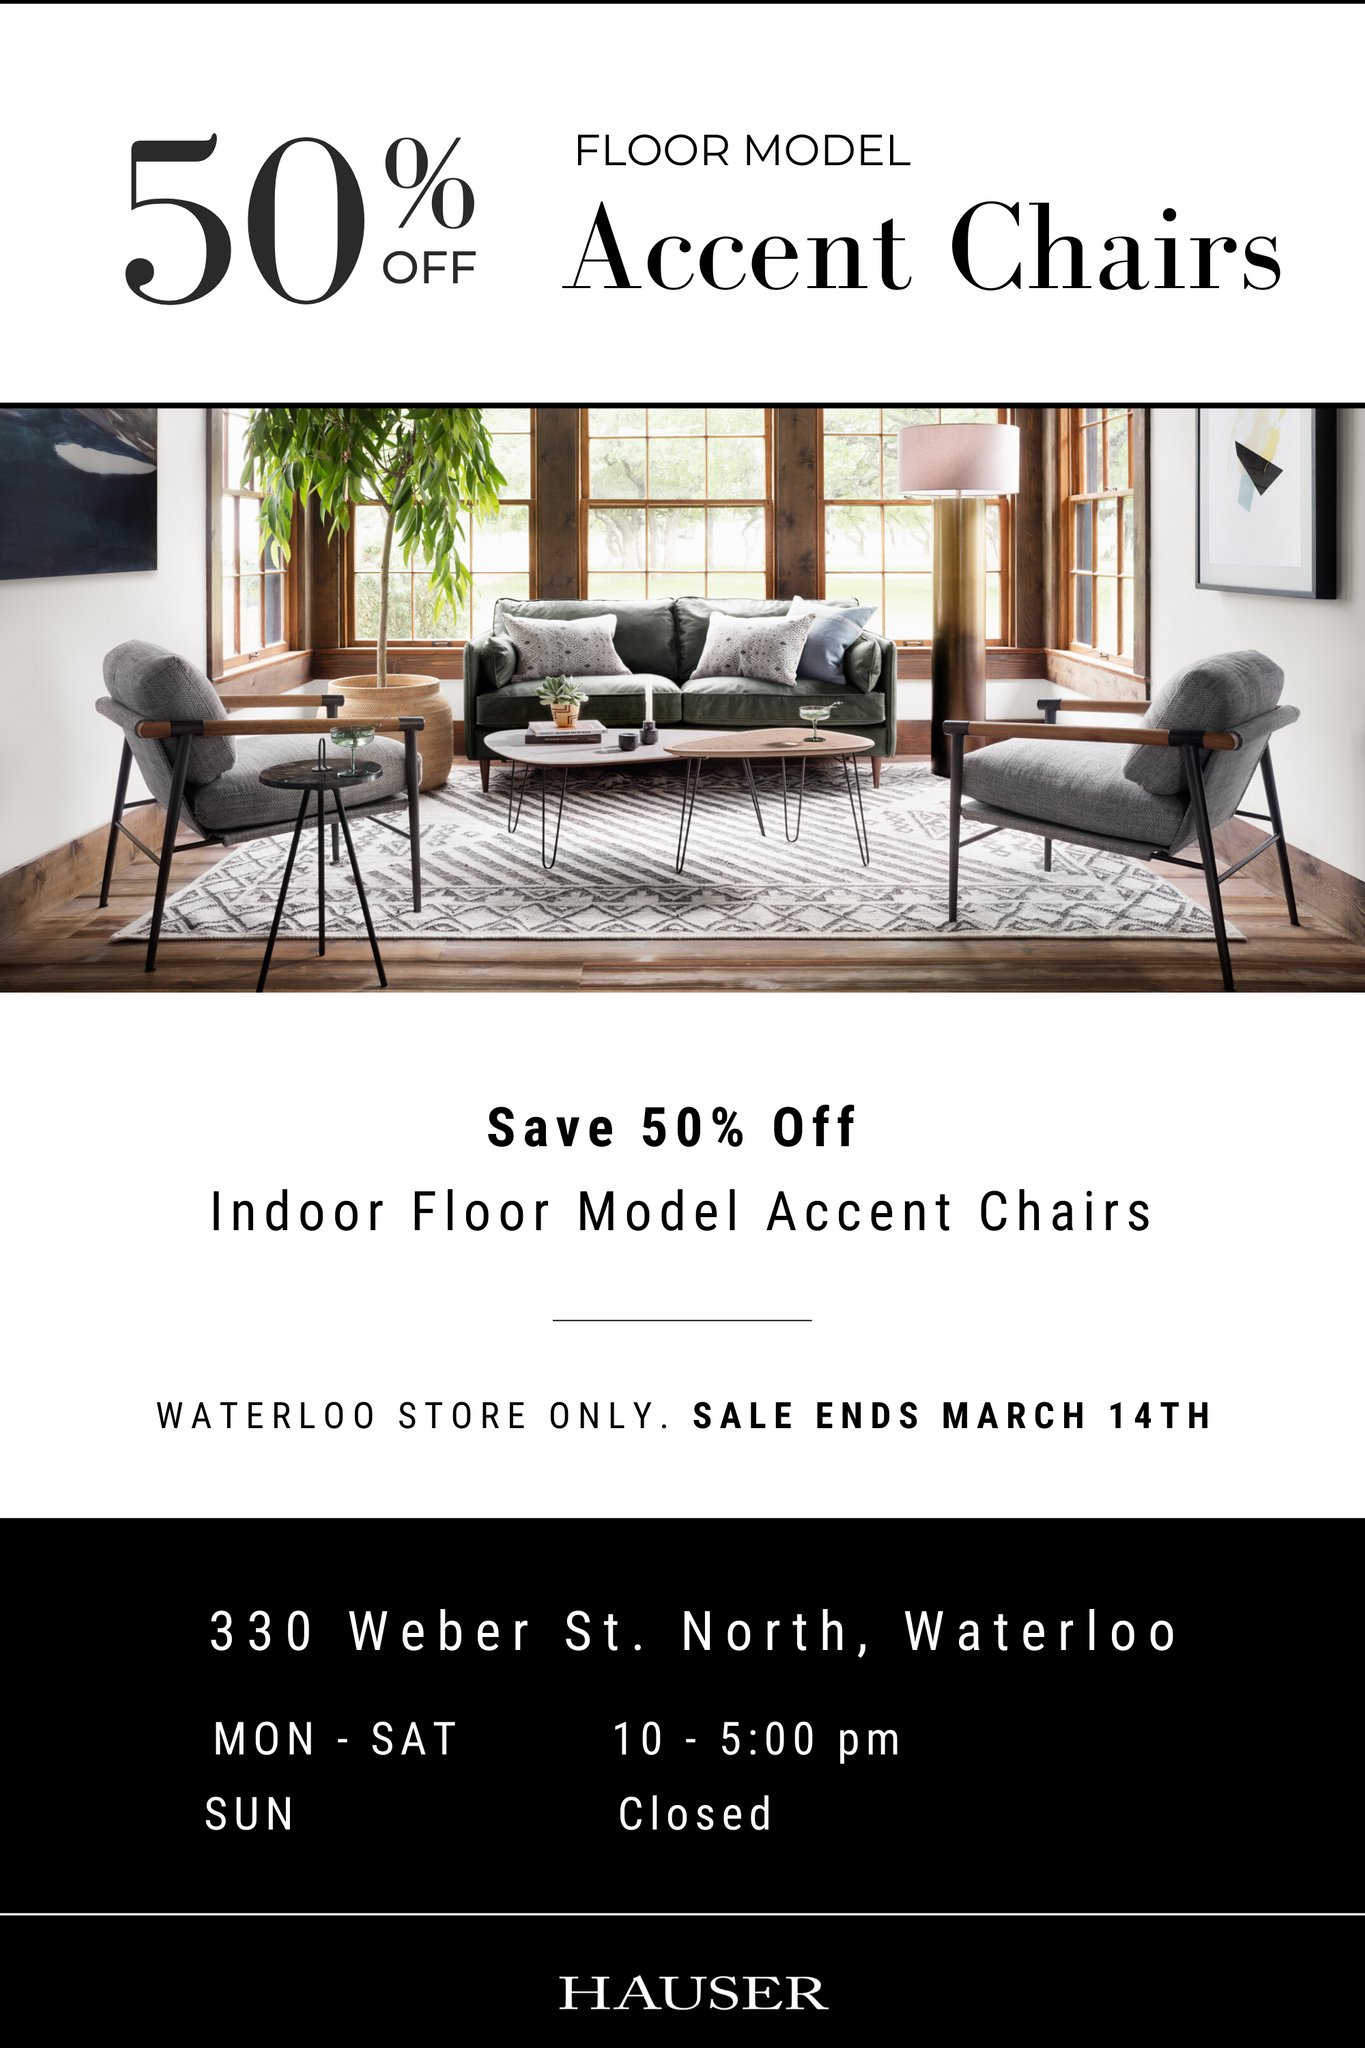 save 50% off indoor floor model accent chairs in waterloo